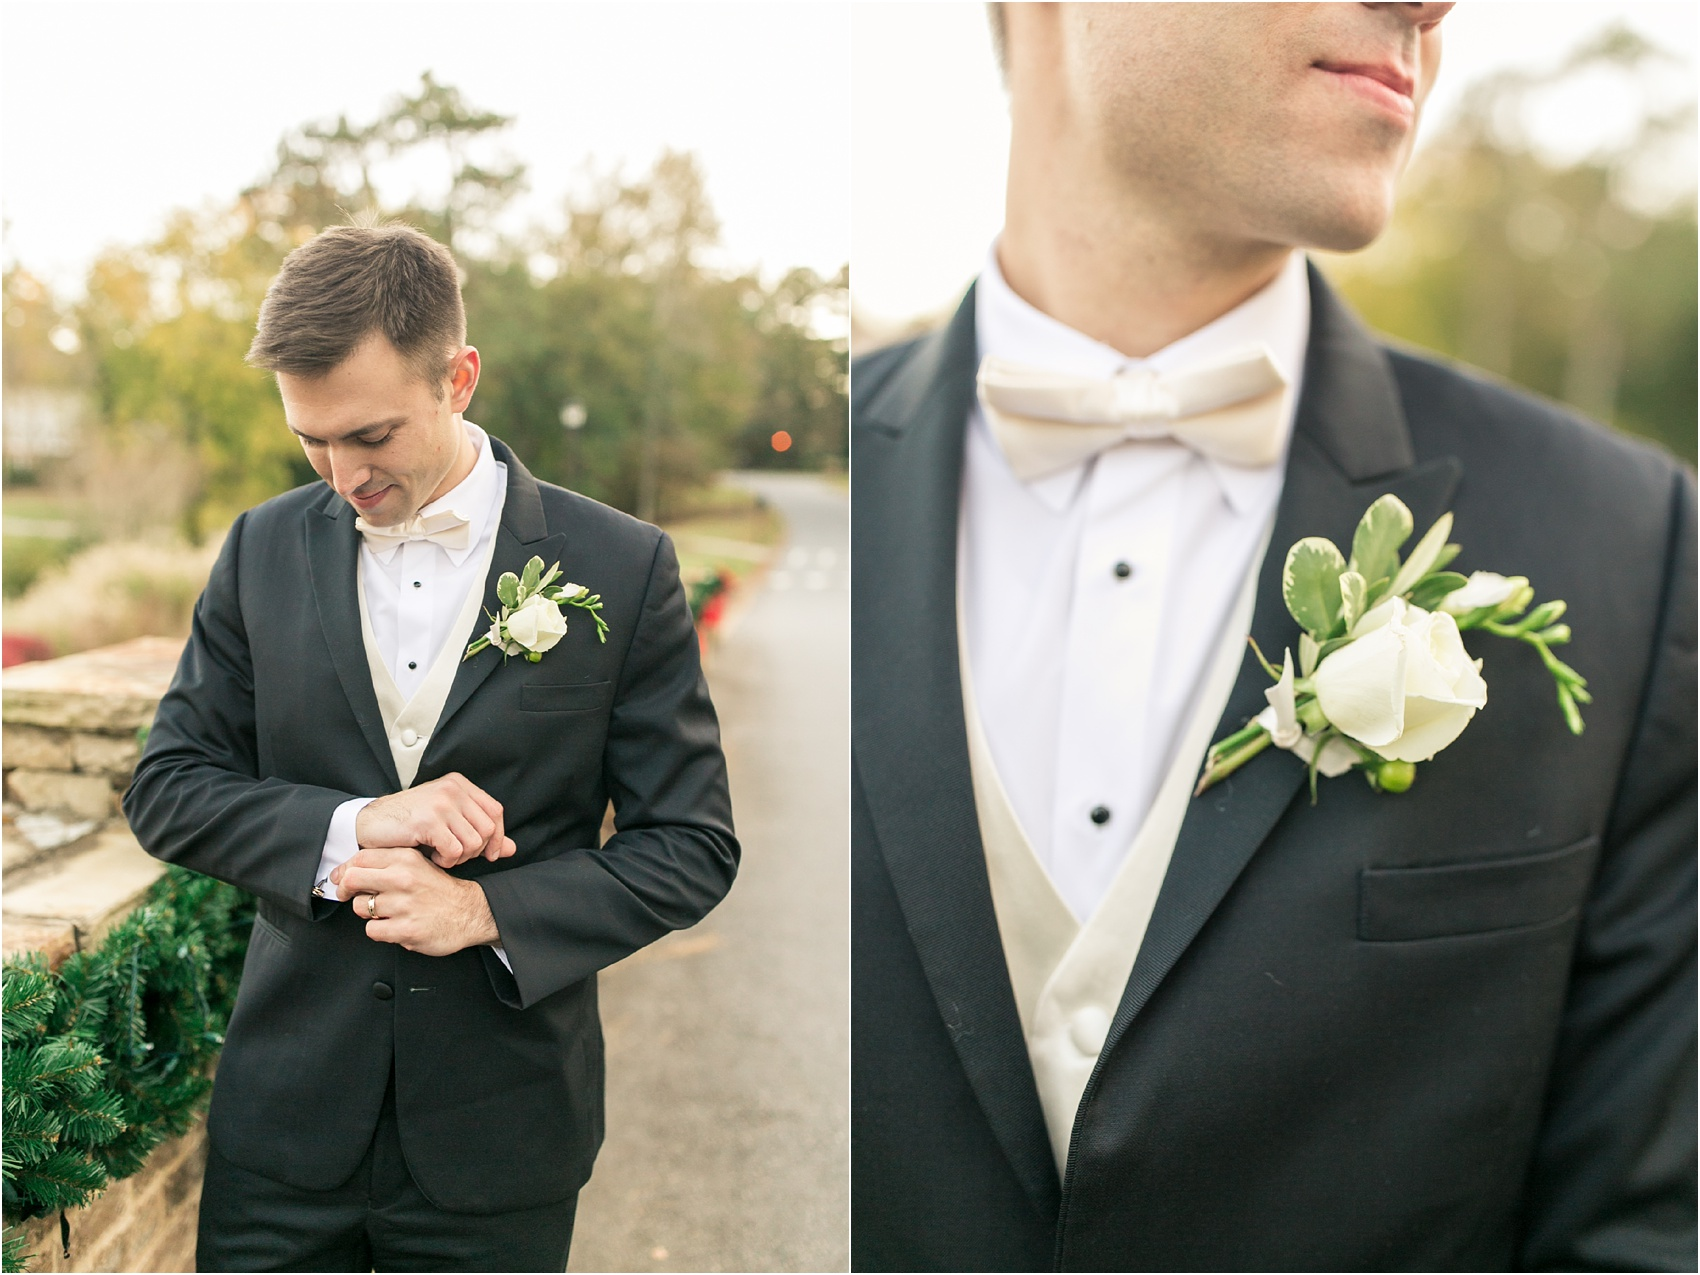 Savannah Eve Photography- Bottiglion-Scope Wedding- Sneak Peek-59.jpg